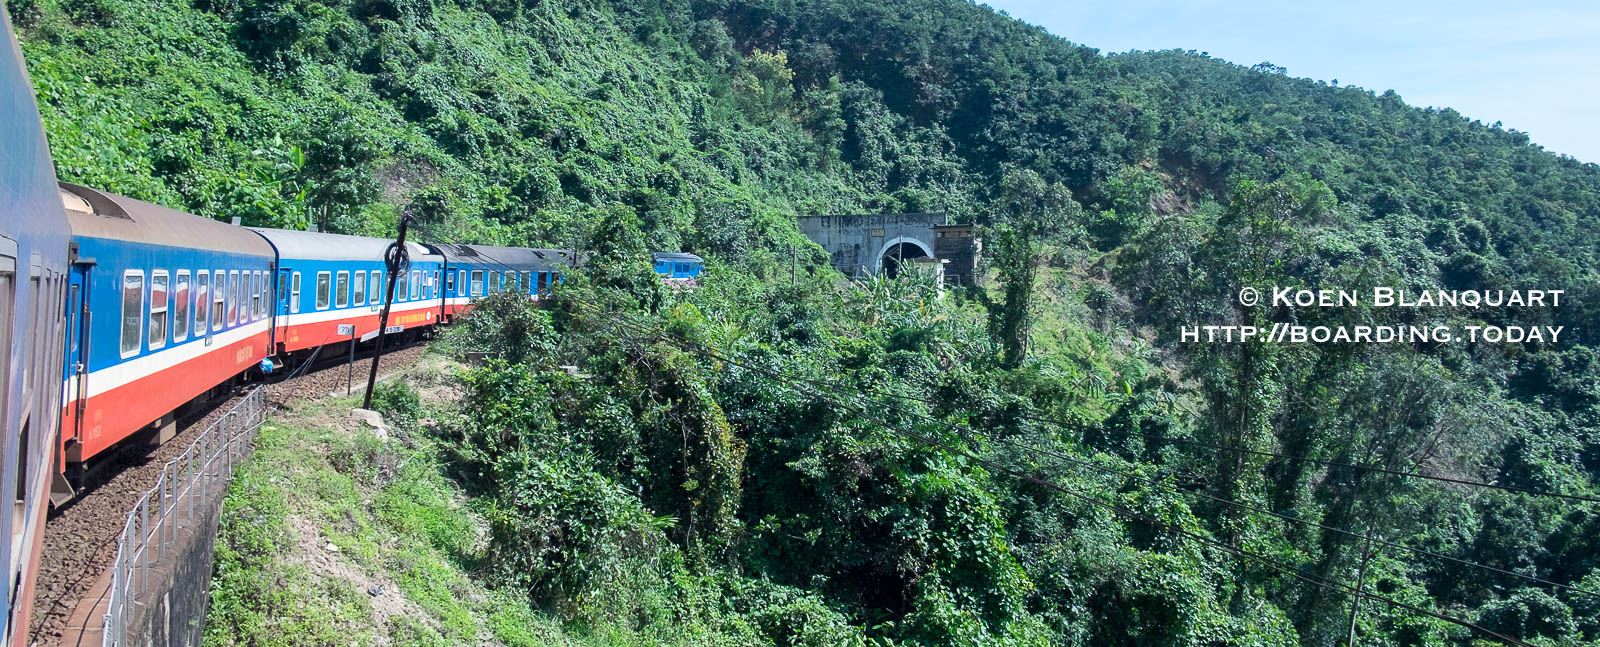 The train between Hanoi and Saigon passing in the mountains